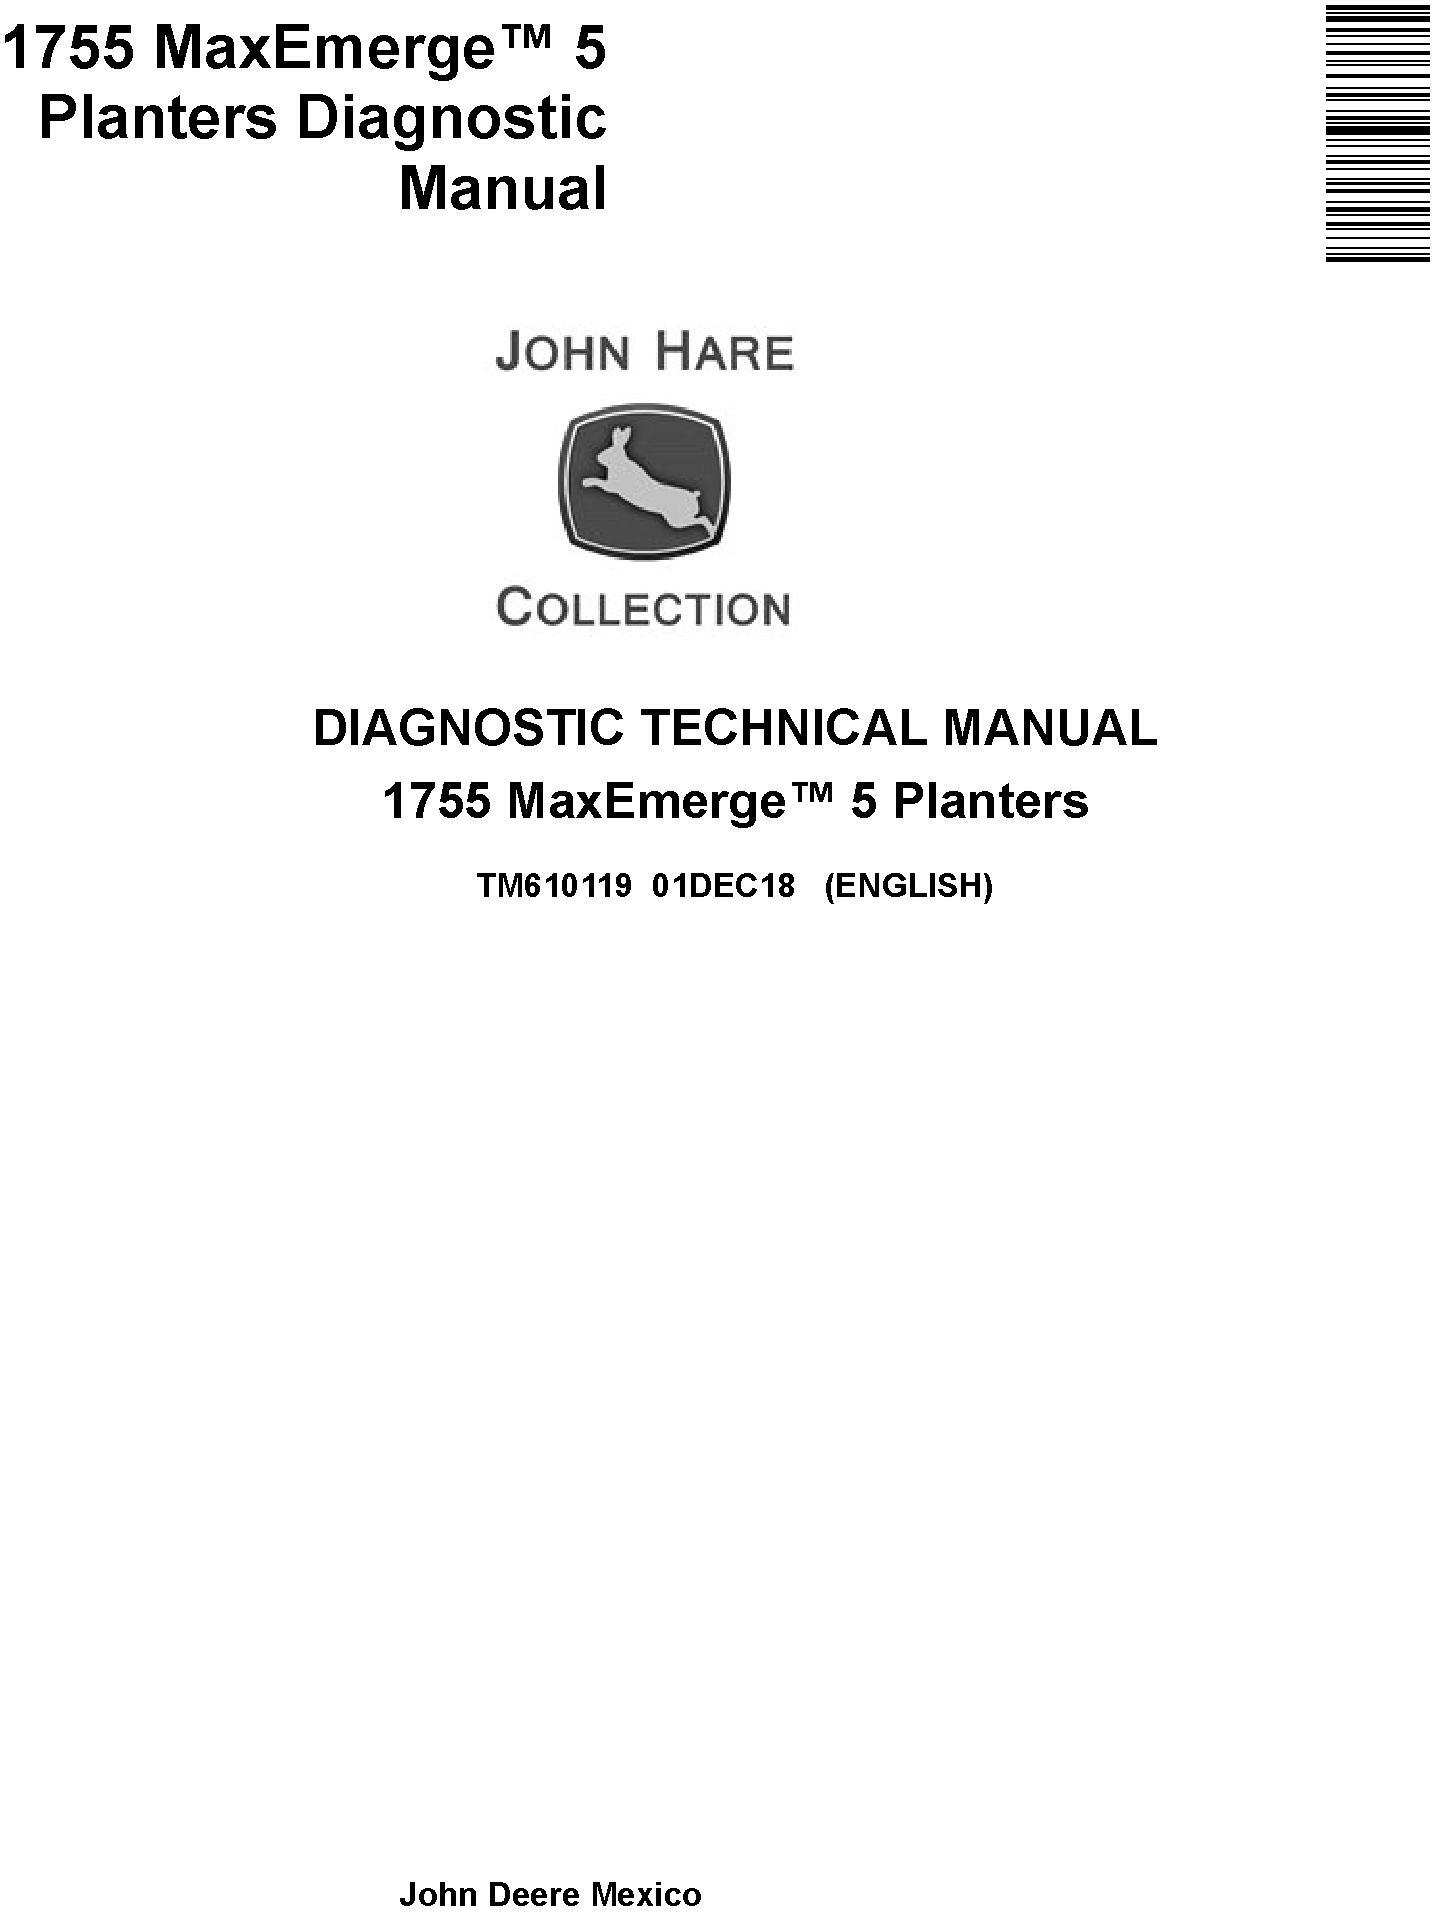 JD John Deere 1755 MaxEmerge 5 Planters Diagnostic Technical Service Manual (TM610119) - 19278